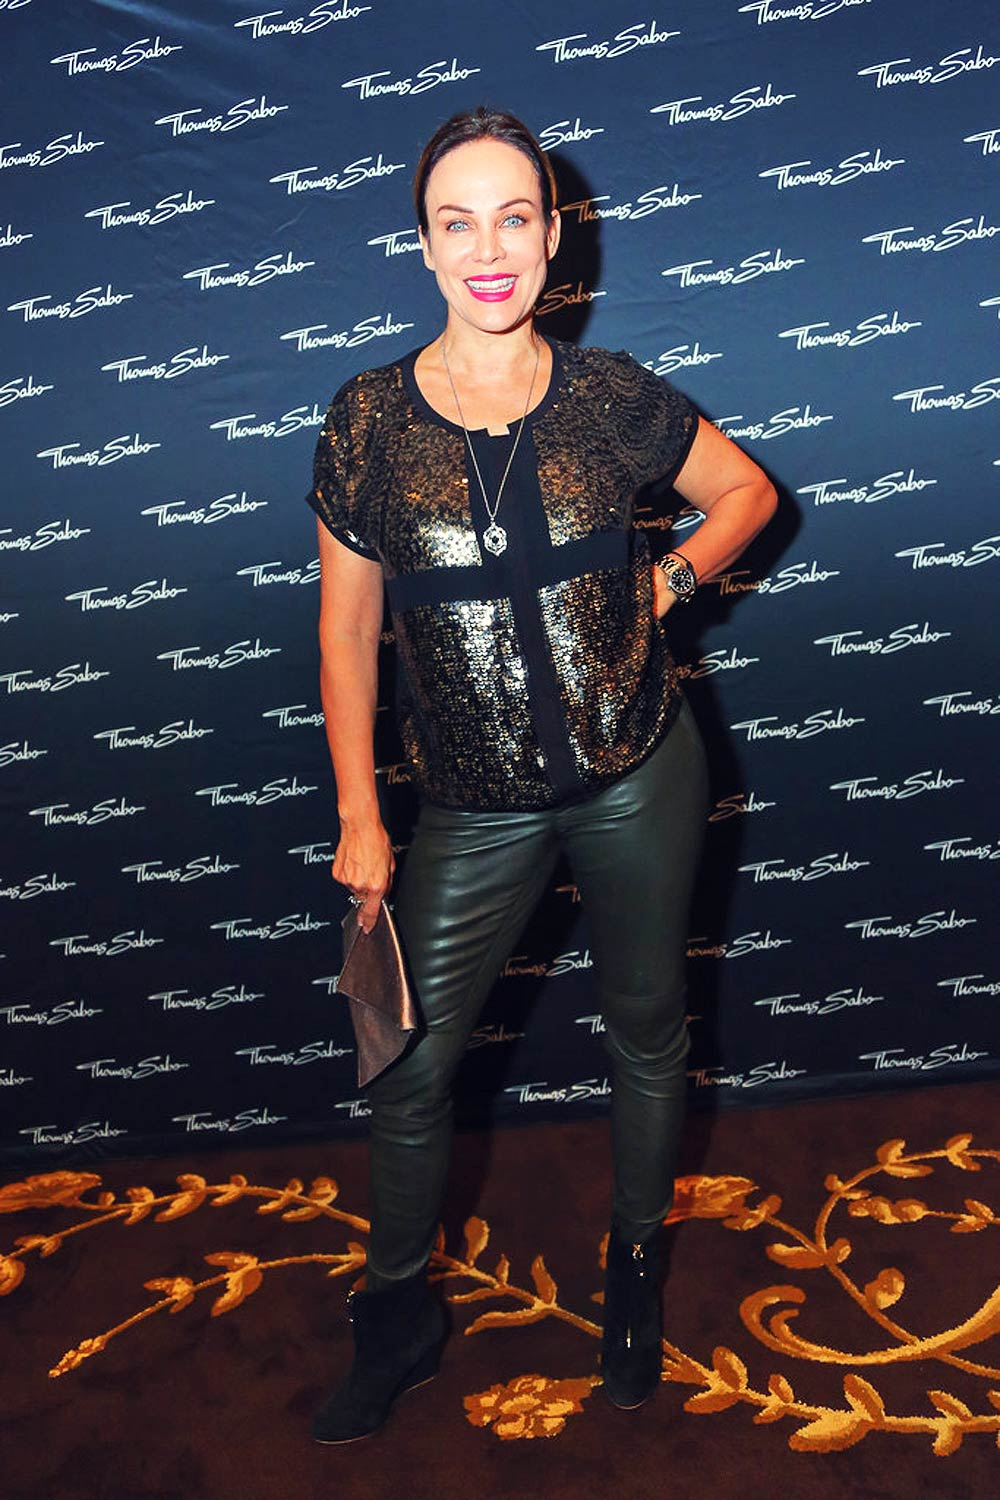 Sonja Kirchberger attends the Thomas Sabo Brand Event